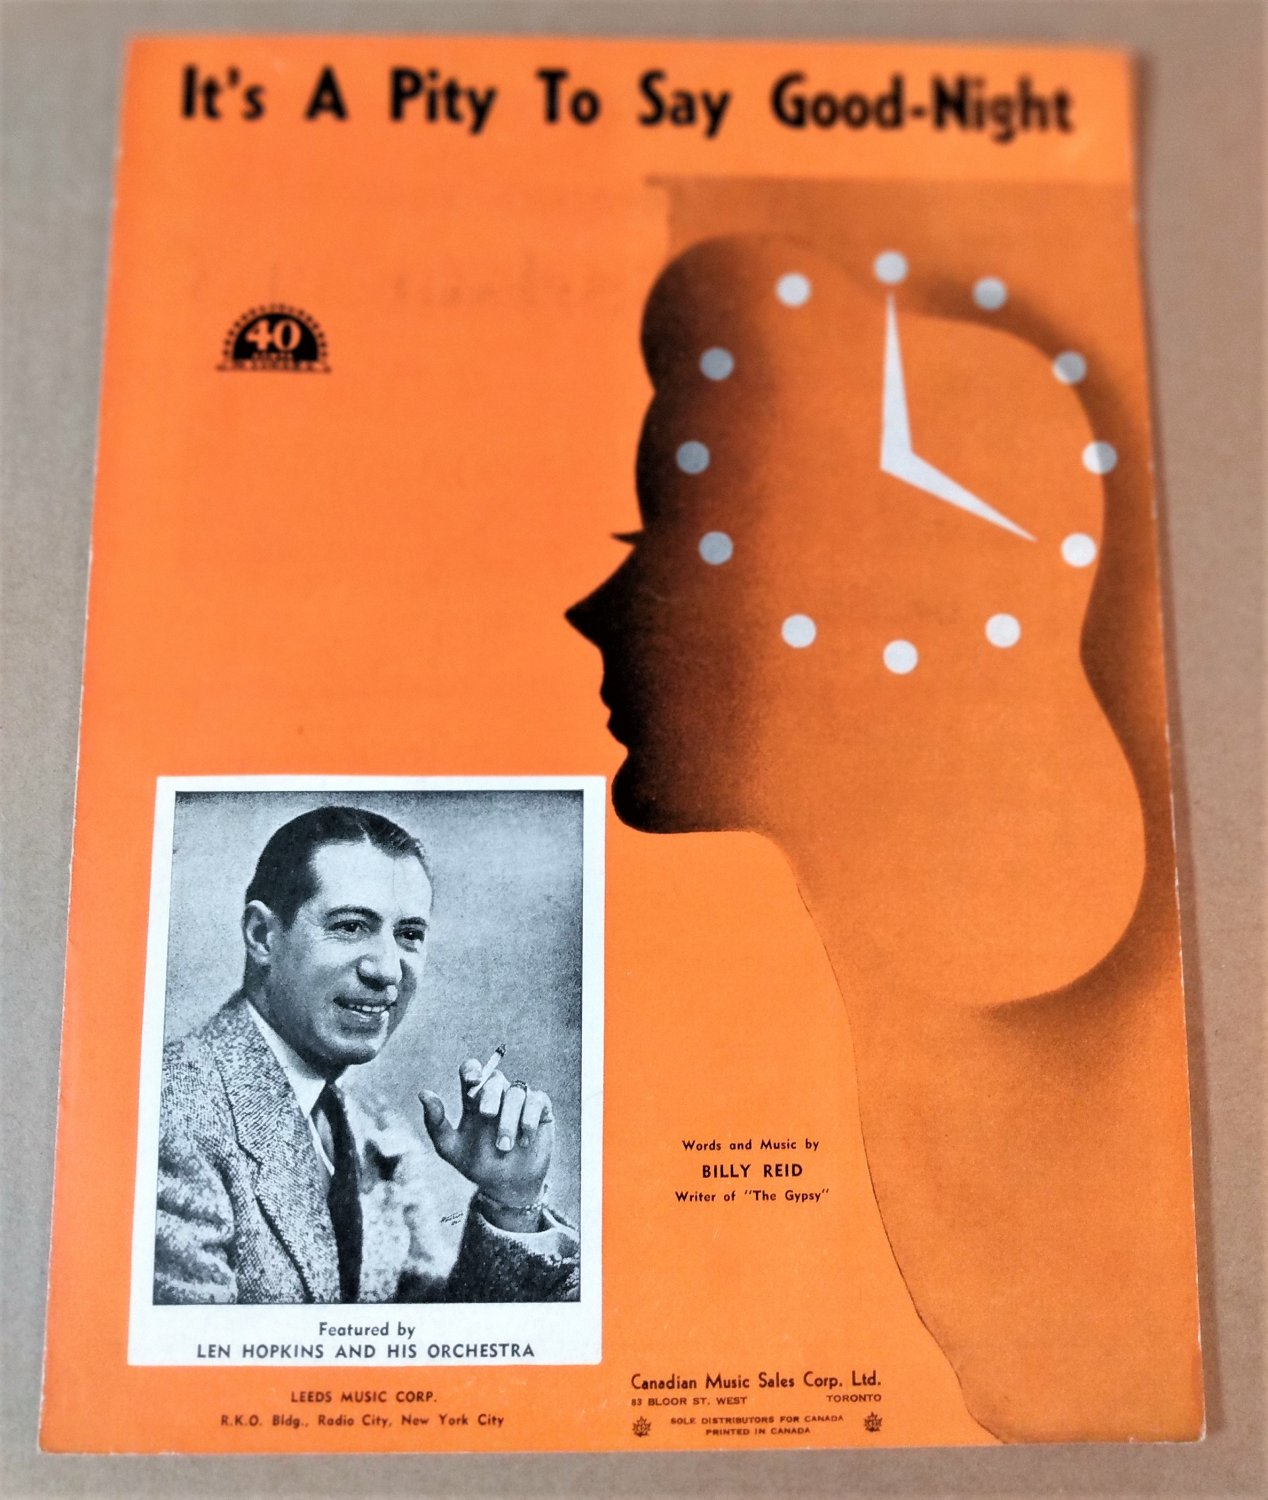 IT'S A PITY TO SAY GOOD-NIGHT Piano Vocal Sheet Music LEN HOPKINS © 1946